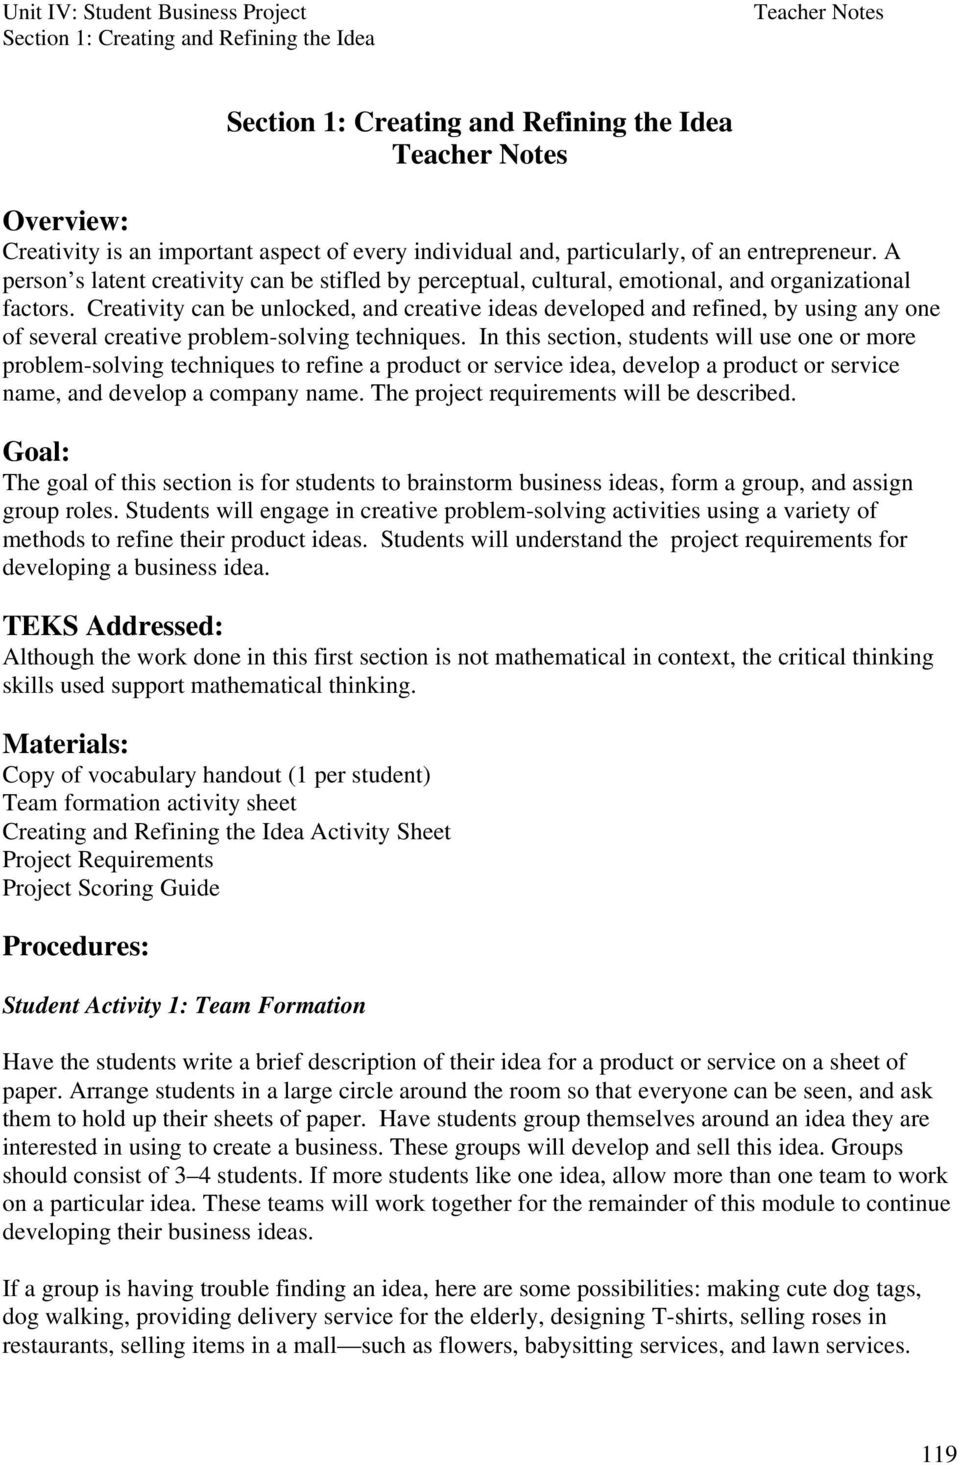 Unit IV: Student Business Project - PDF